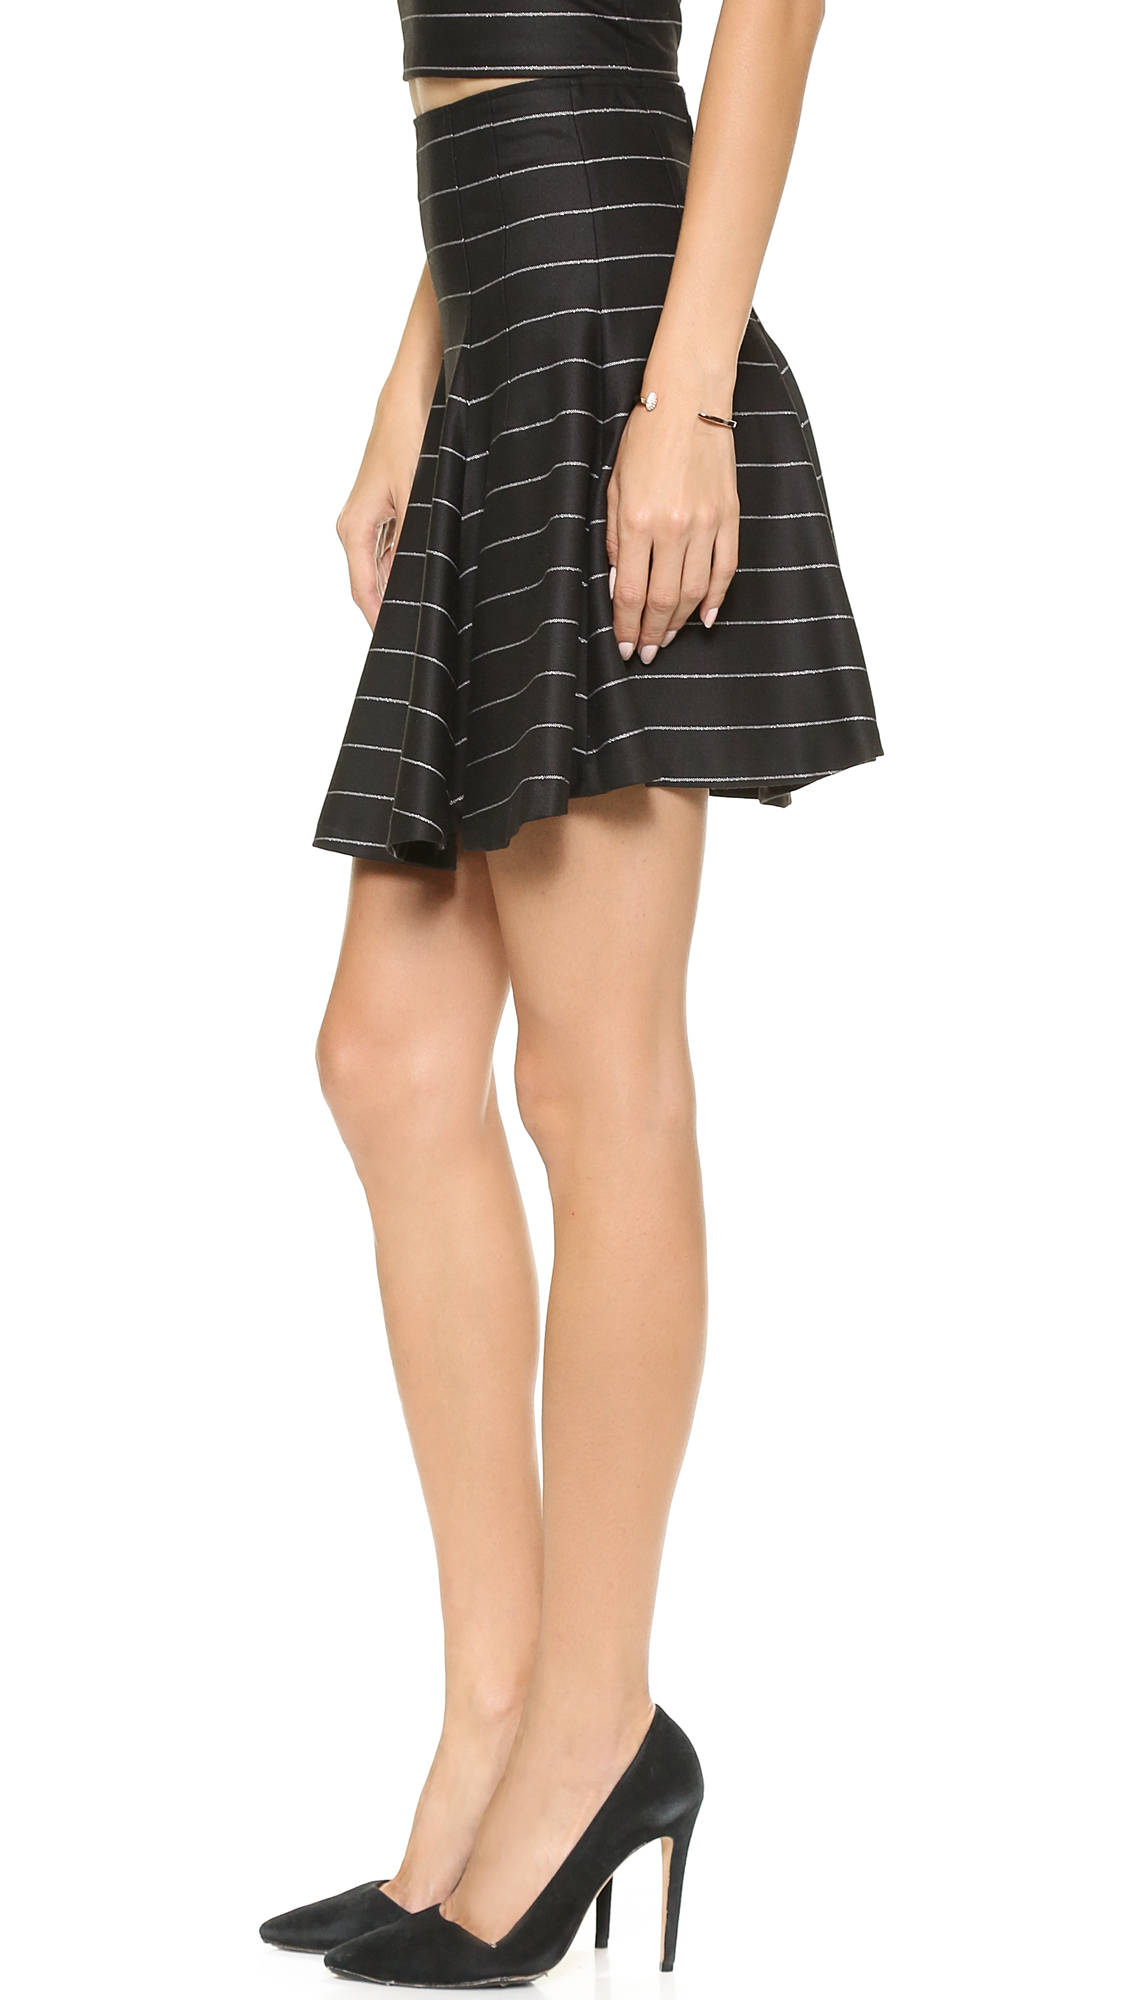 High Waisted Fit And Flare Skirt - Skirts